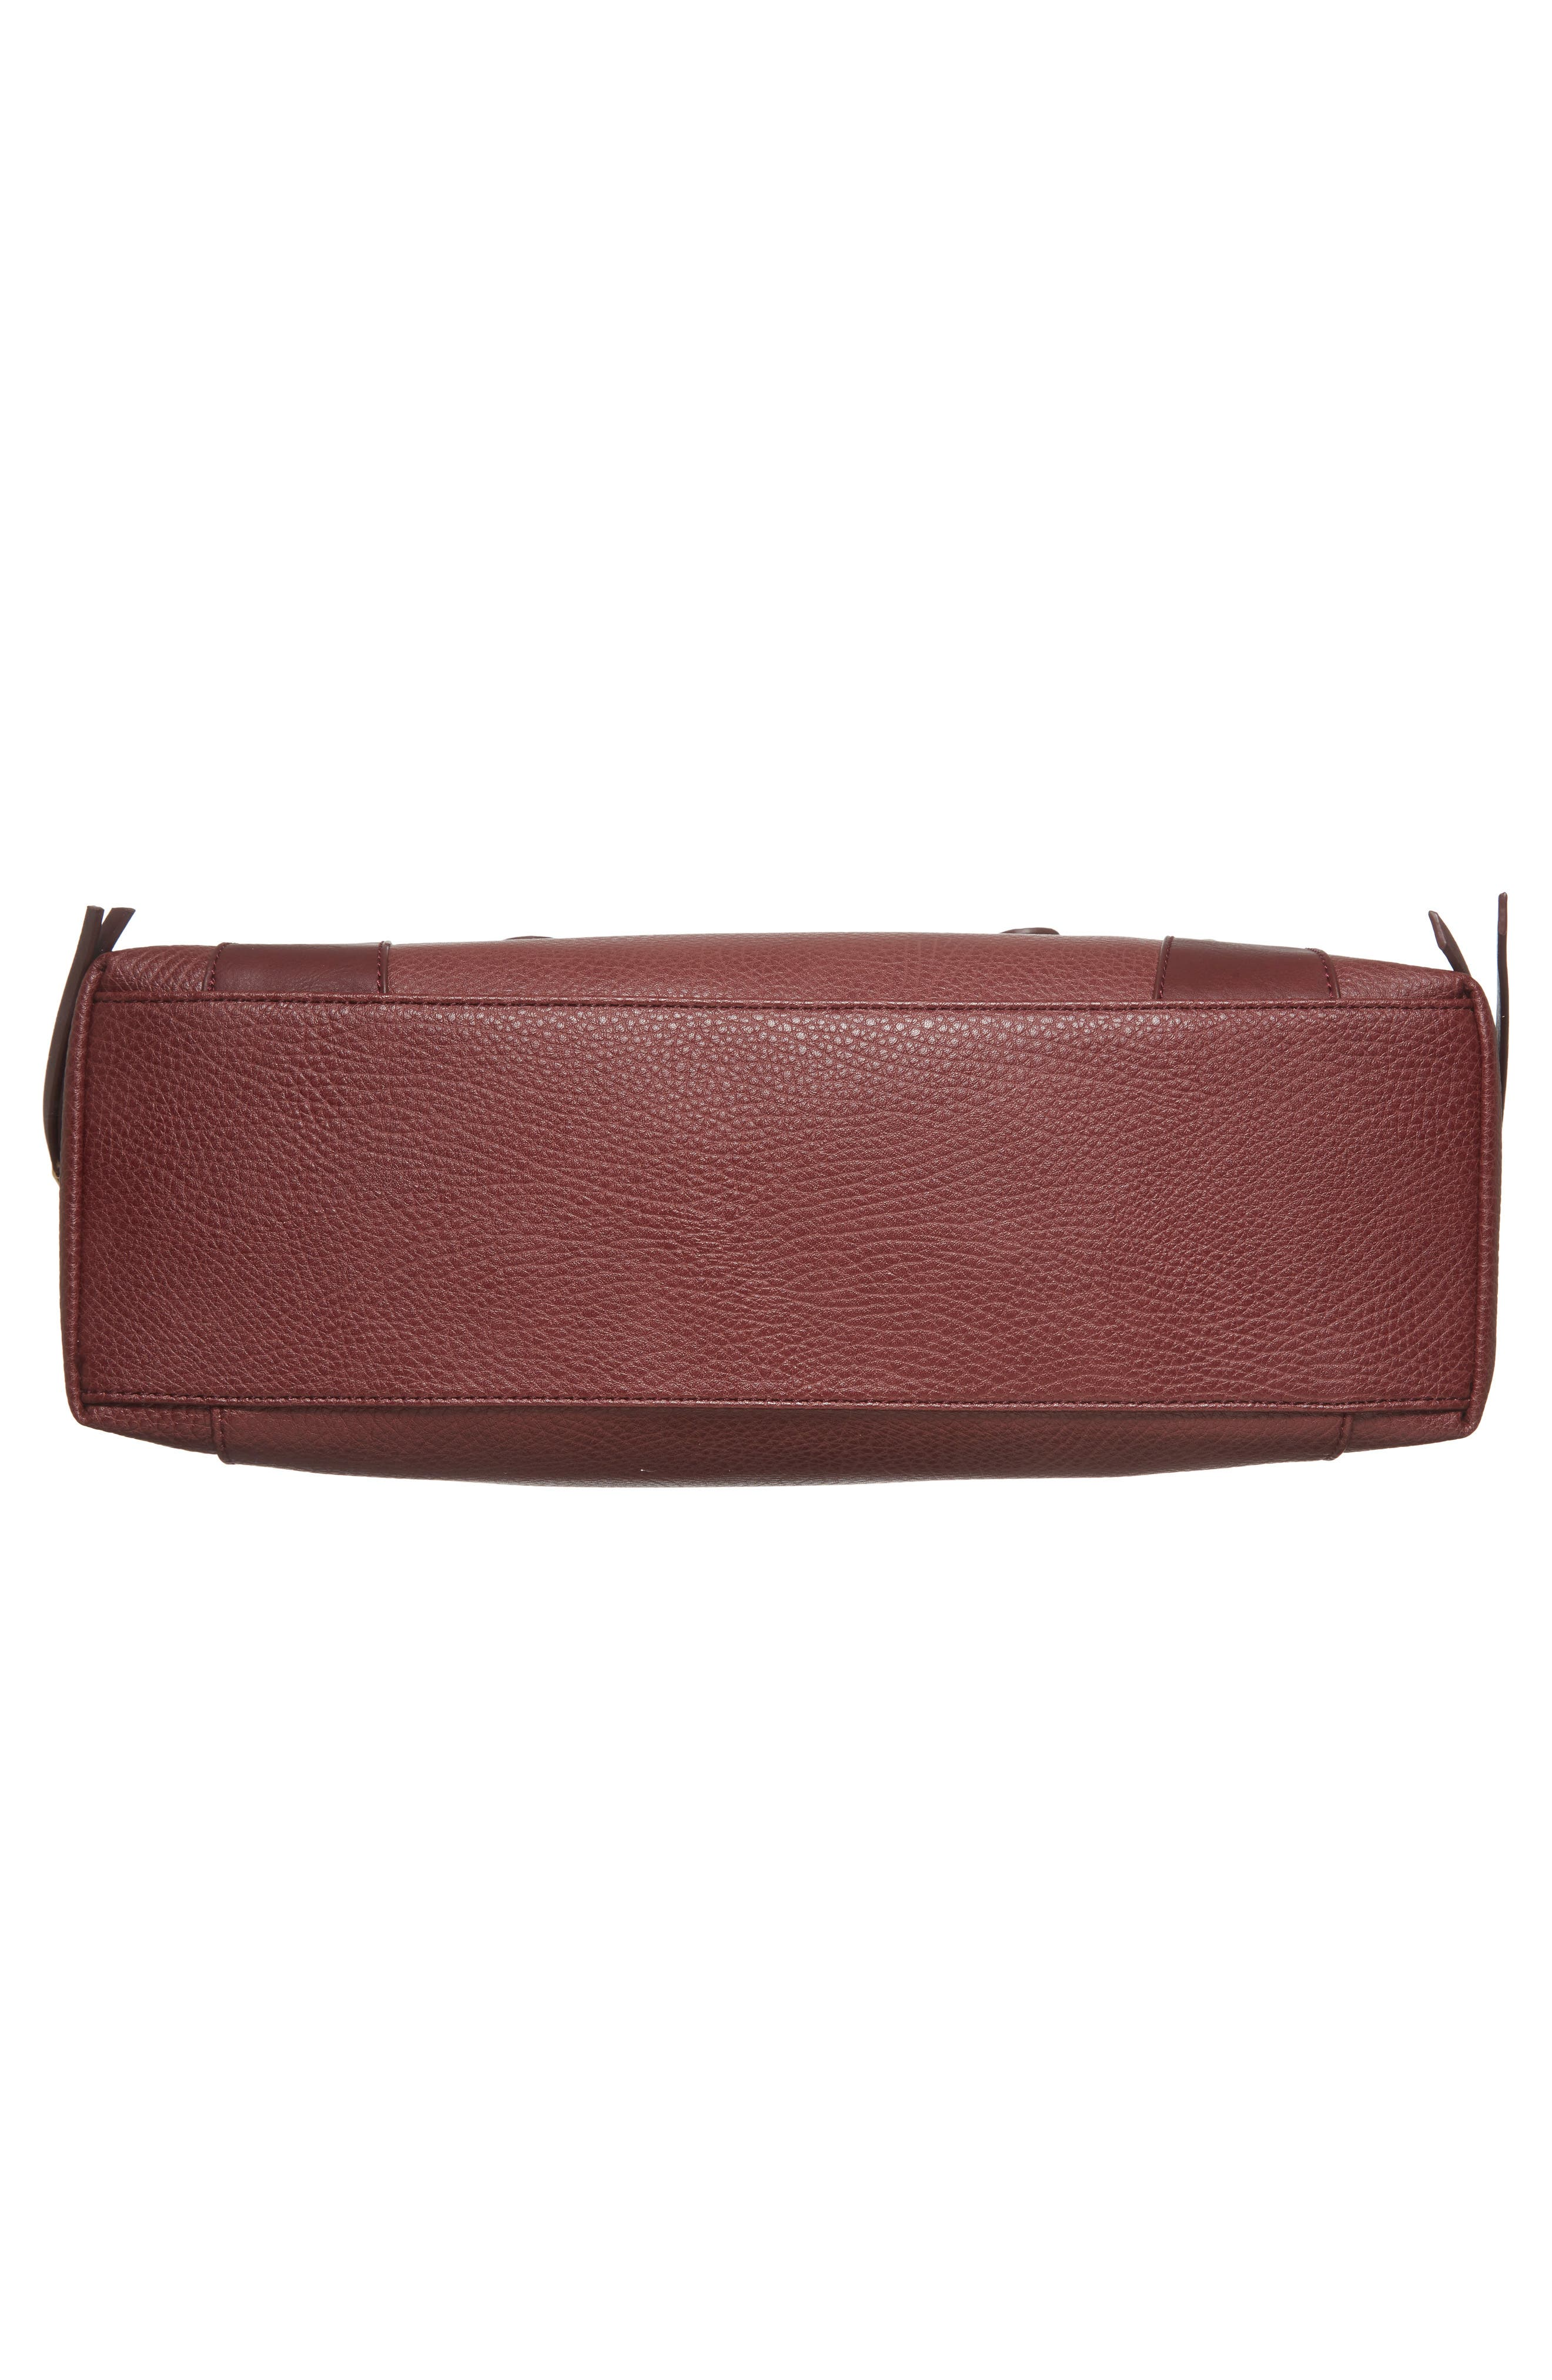 'Susan' Winged Faux Leather Tote,                             Alternate thumbnail 6, color,                             Oxblood